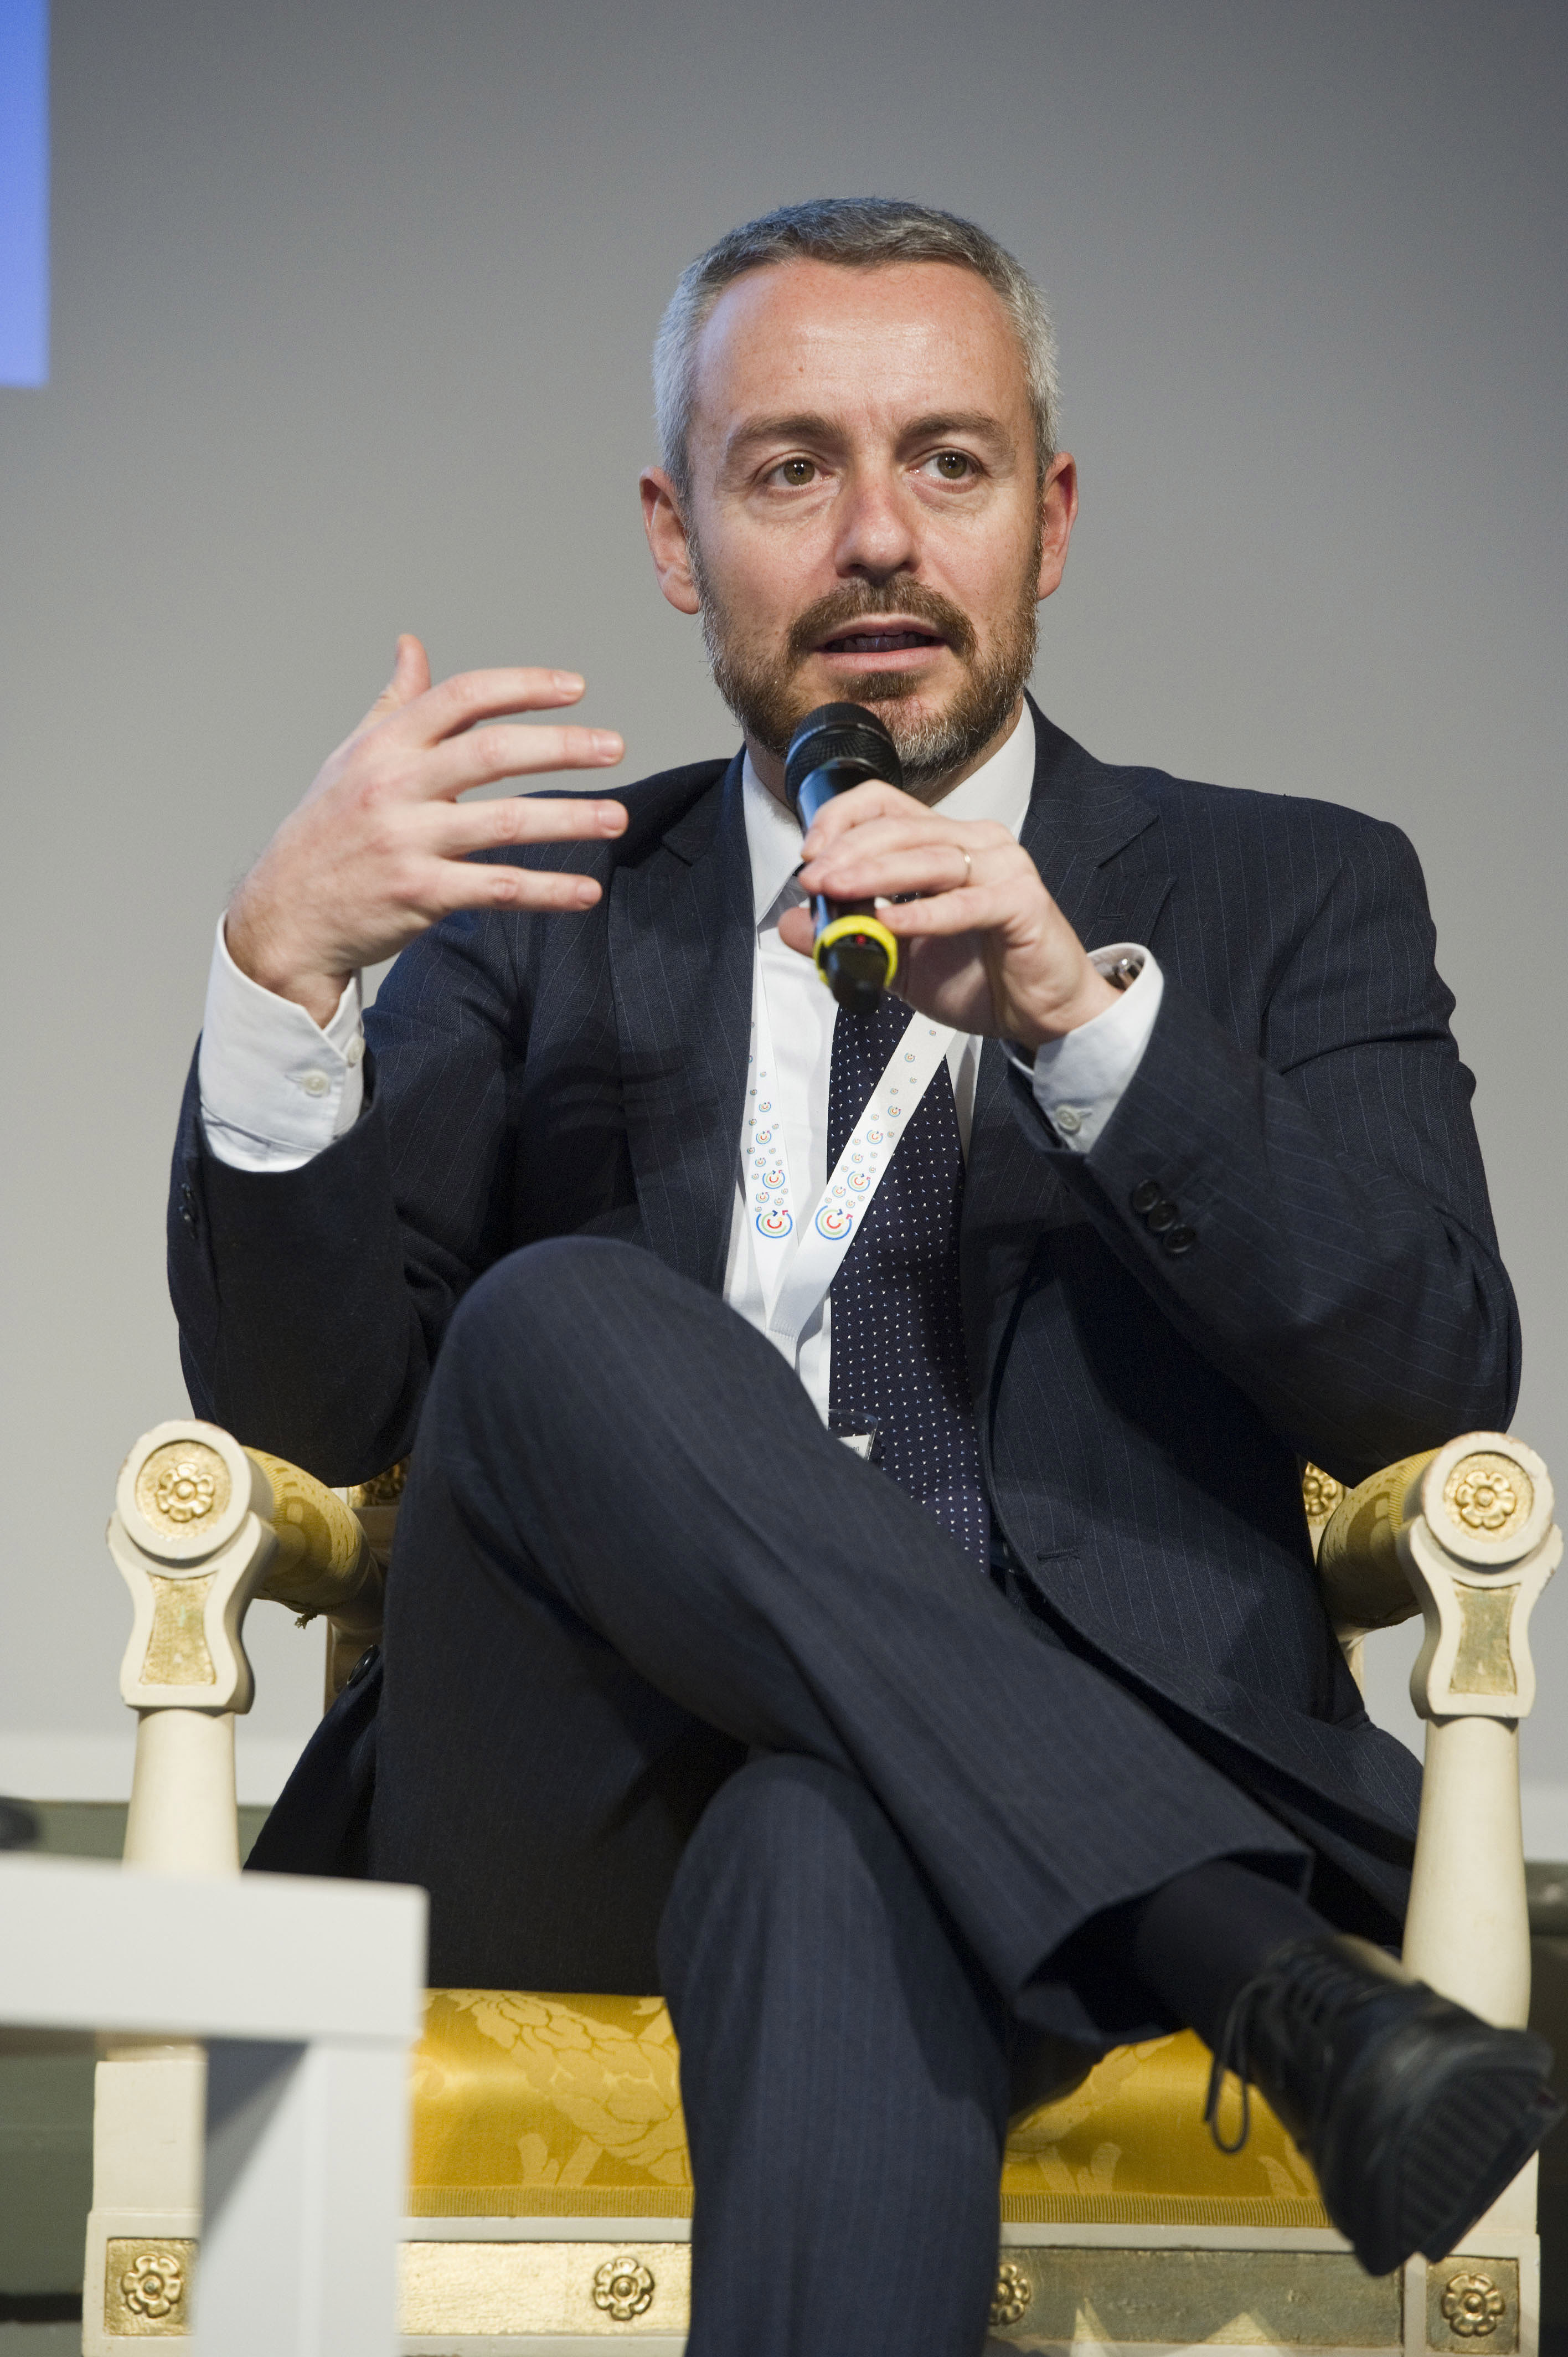 Alessandro Bellantoni, Senior Policy Analyst and Head of the Open Government Unit, OECD